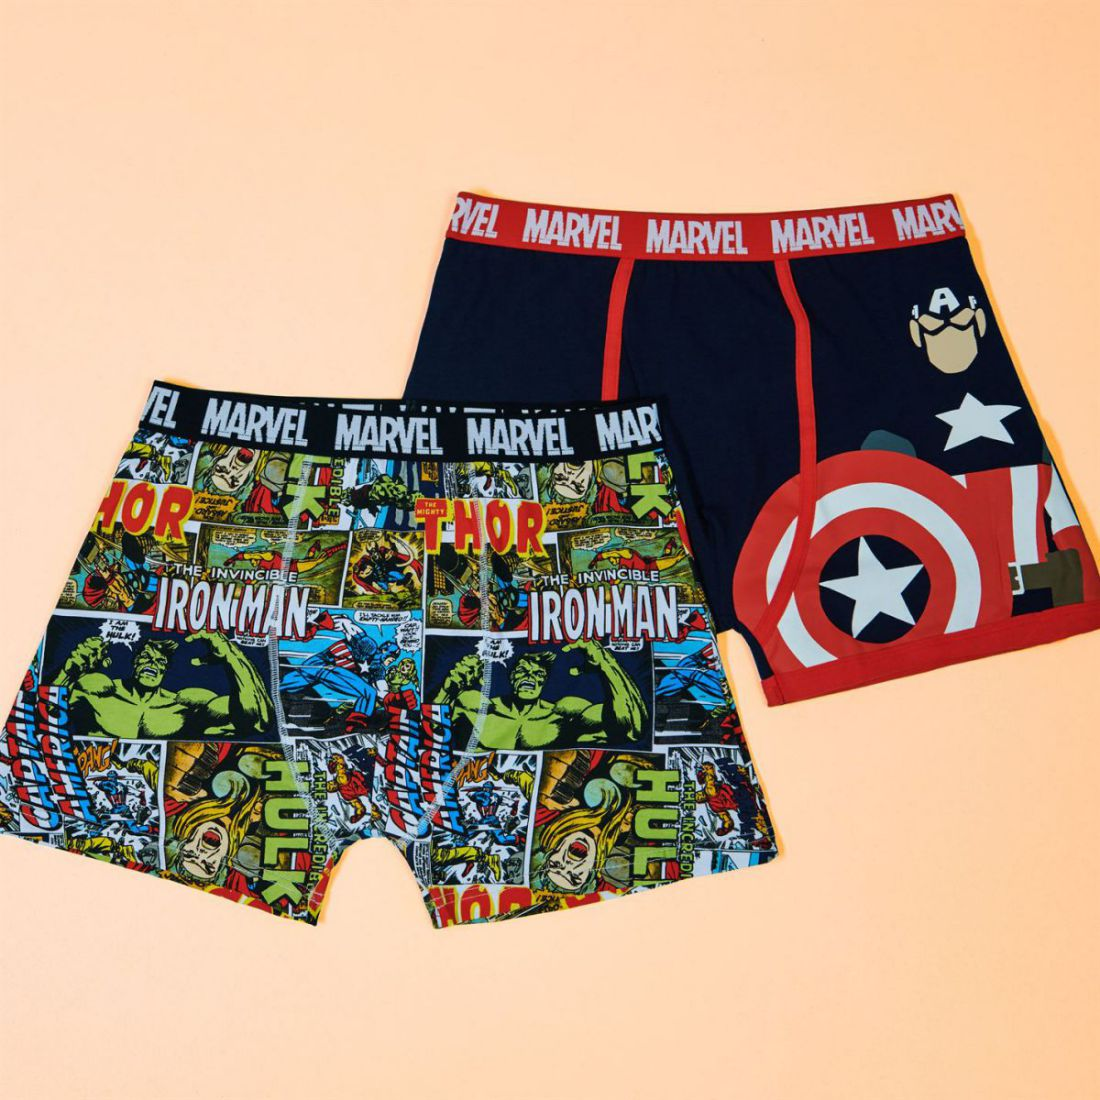 c53fa56c0 Mens Boxer Underwear Character 2 Pack Boxers Print Marvel L for sale ...